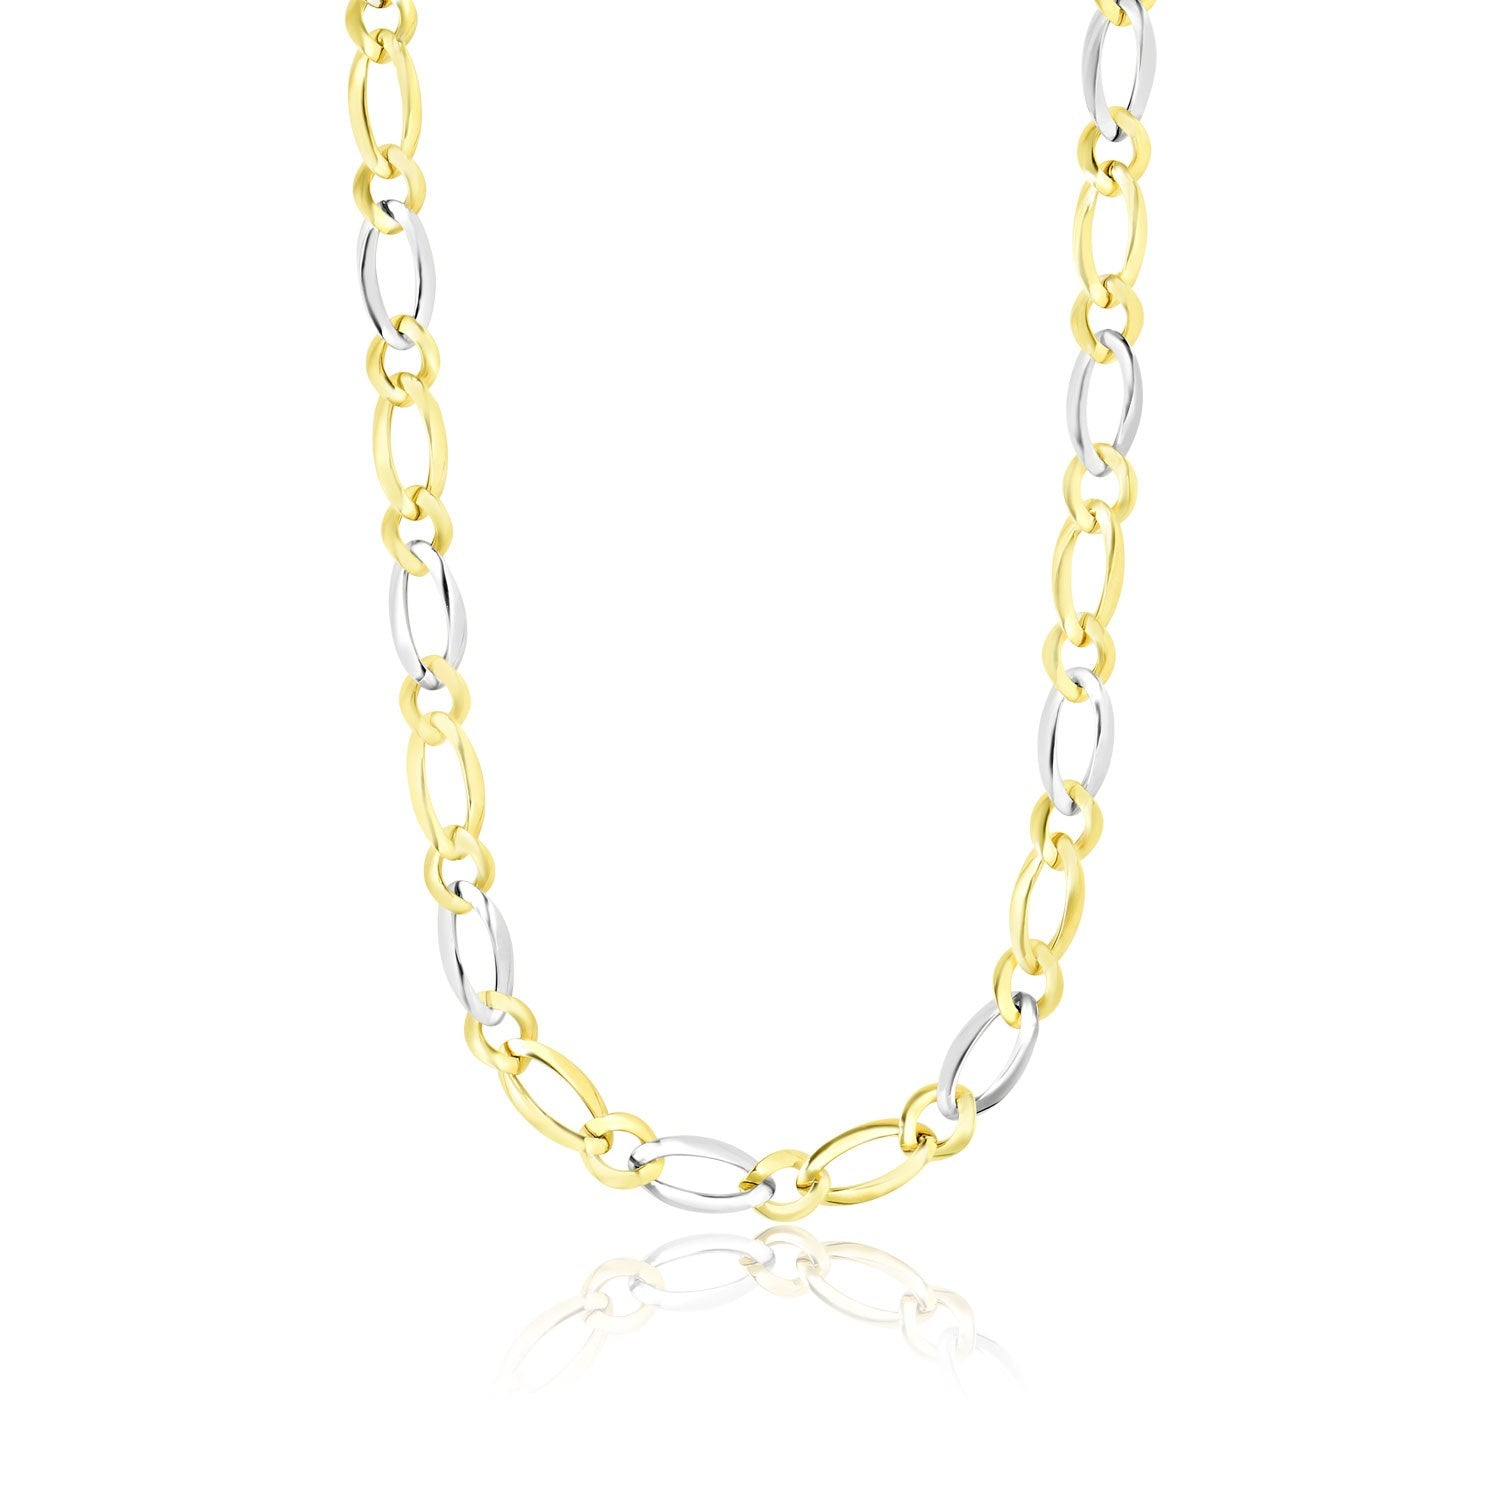 14K Two-Tone Gold Long and Short Link Figaro Chain Necklace